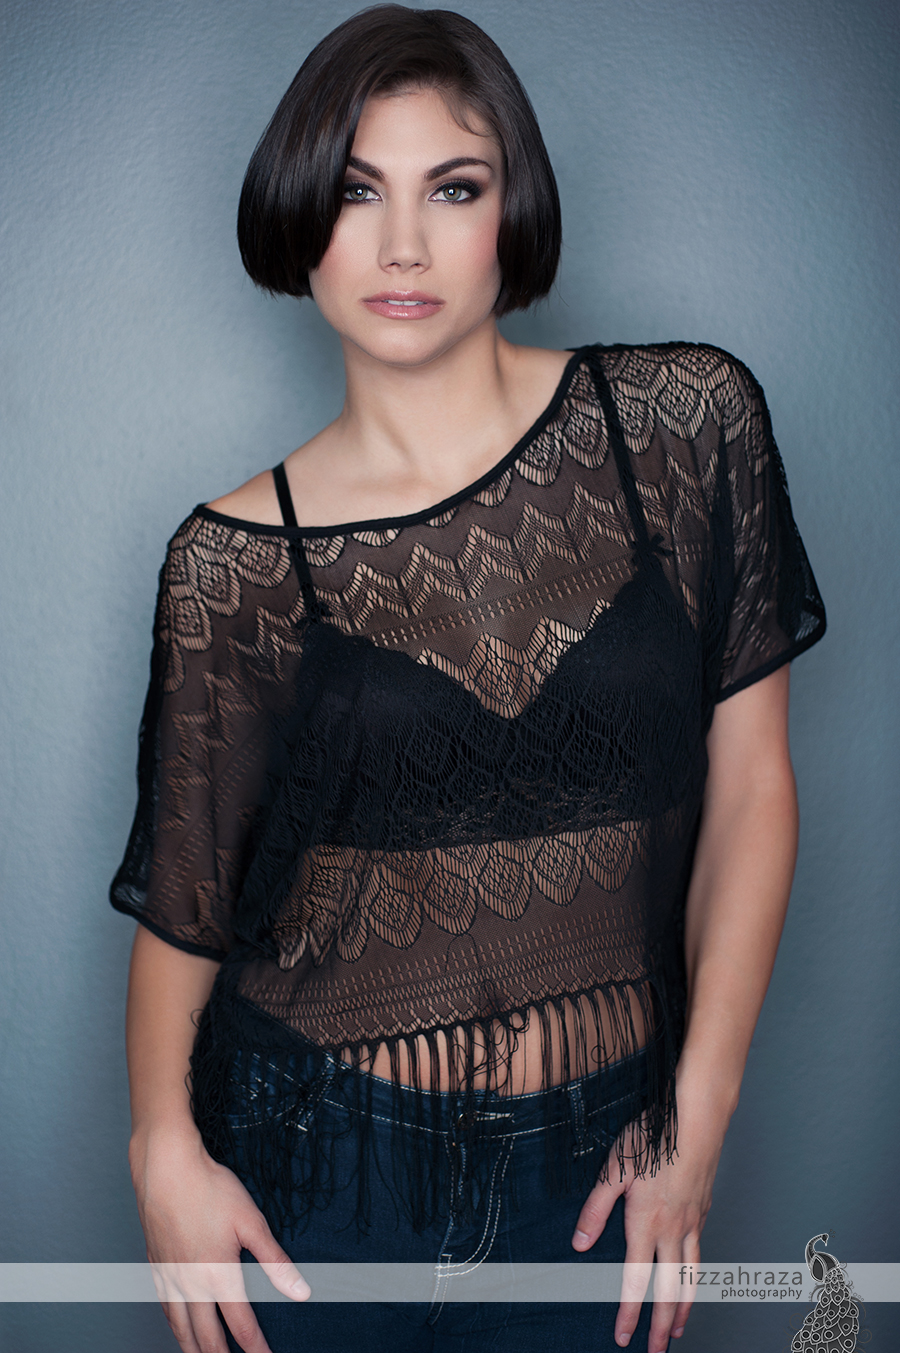 black lace top with bra and jeans glamour portrait woman short hair green eyes